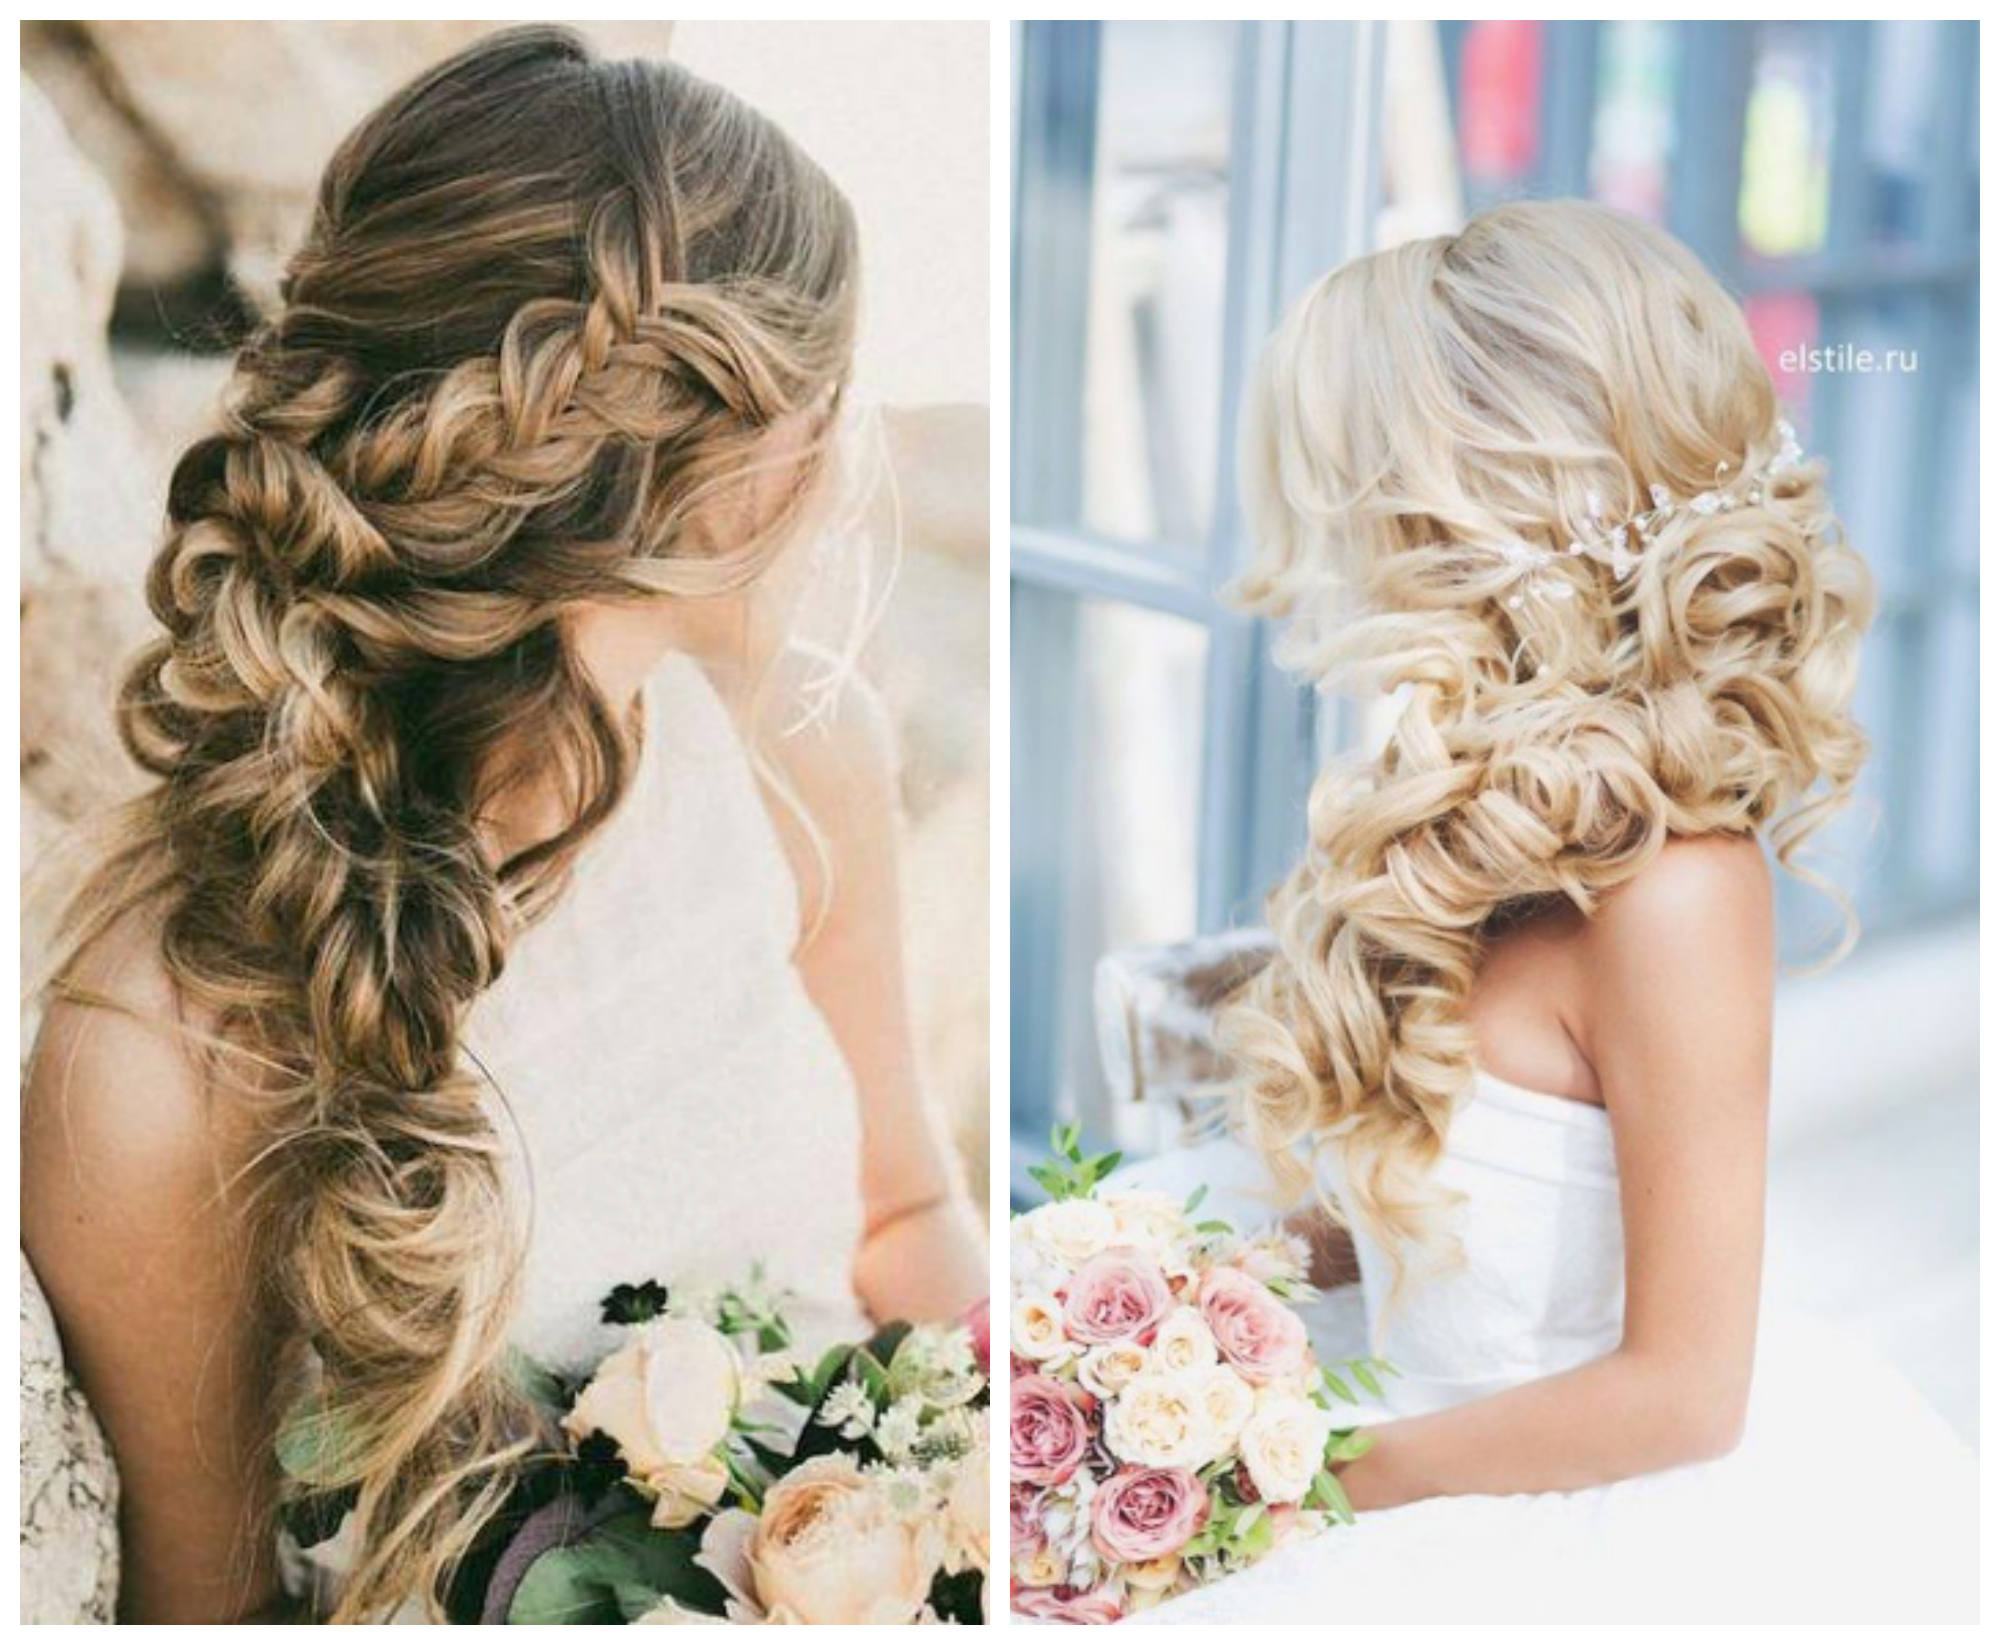 5 Bridal Hairstyles For Your Wedding Day